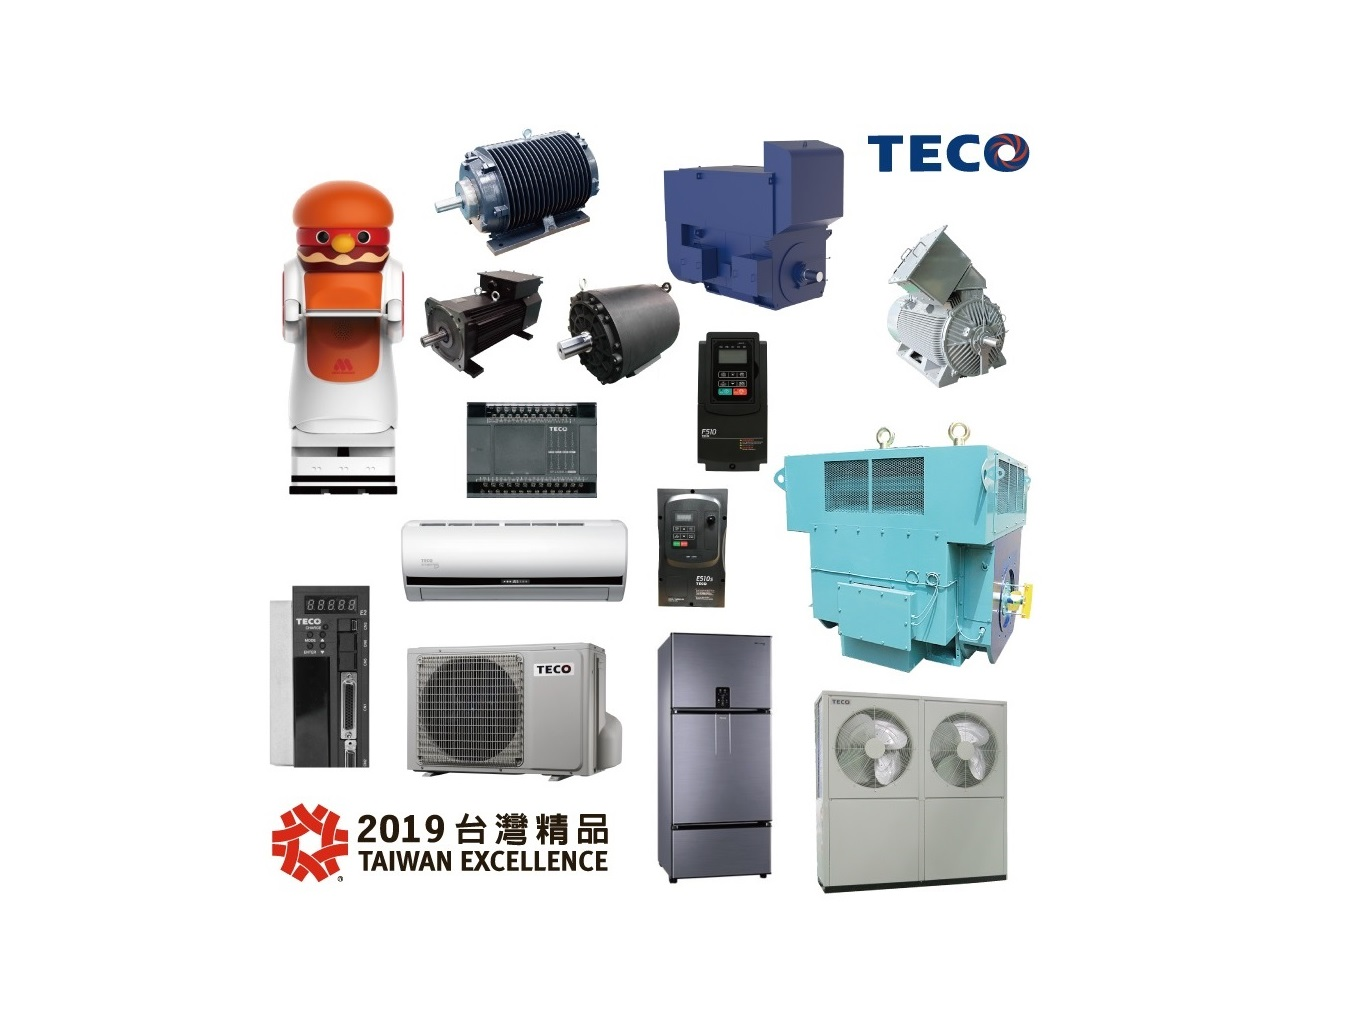 TECO Granted Taiwan Excellence Awards for 15 Products